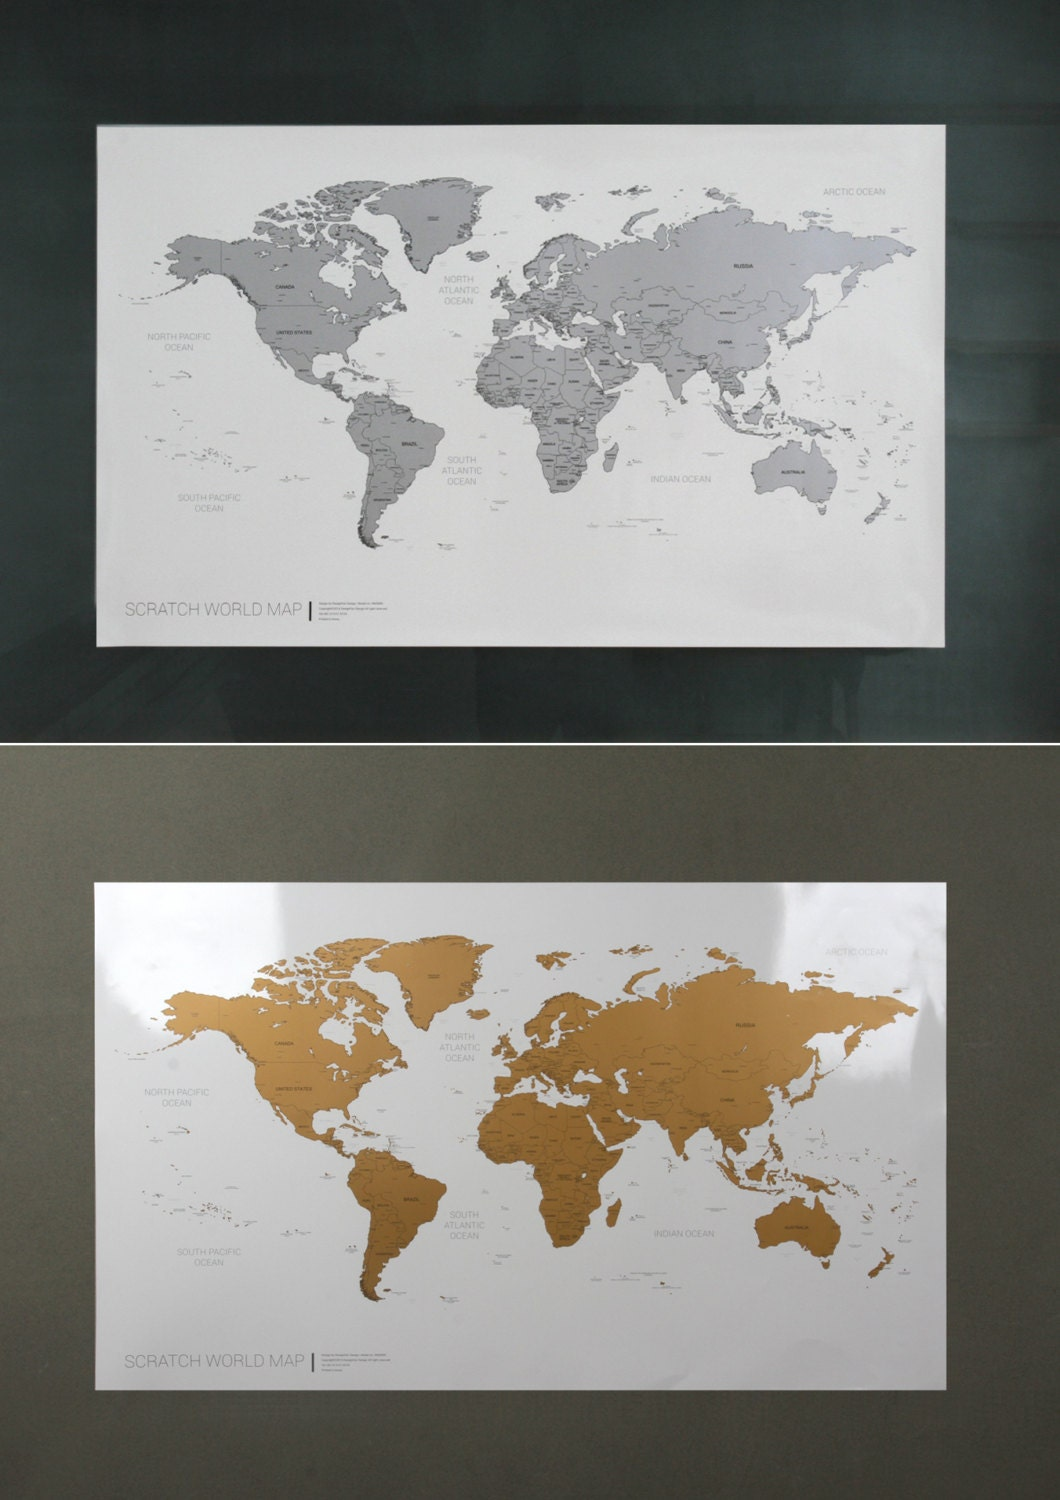 scratch off world map poster silver gold. Black Bedroom Furniture Sets. Home Design Ideas